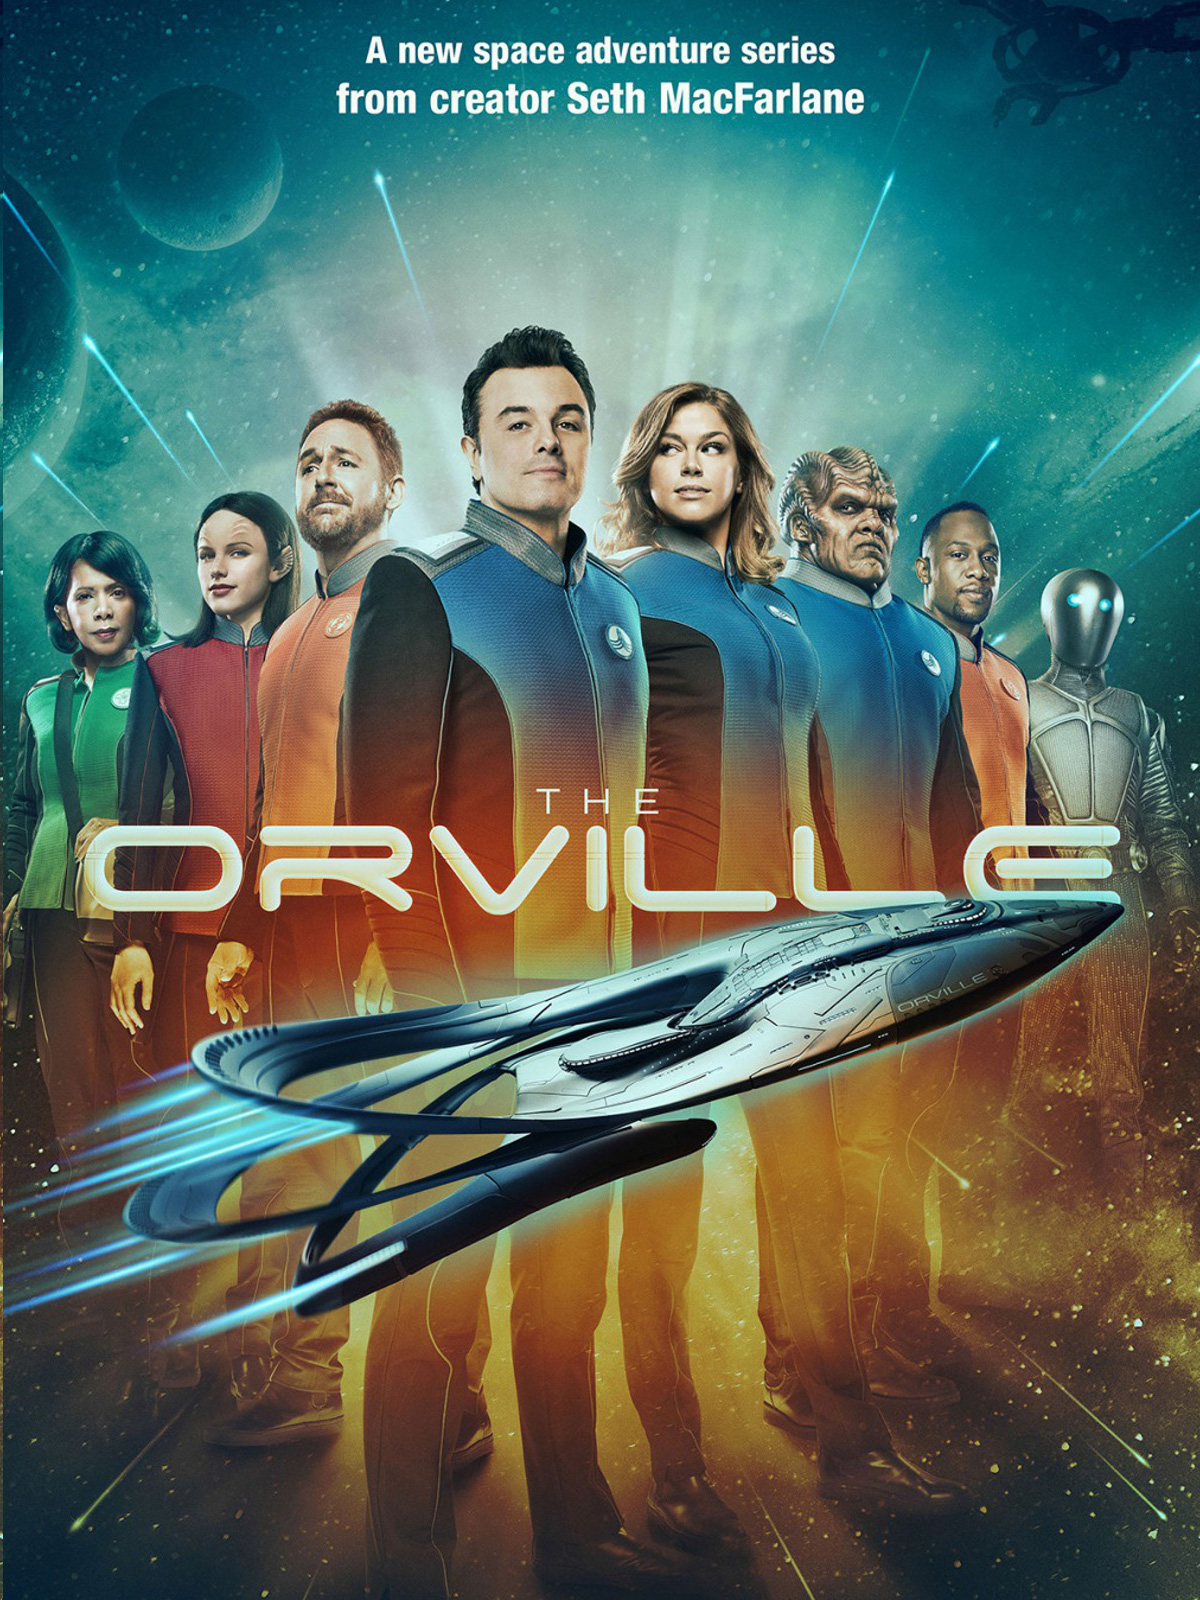 https://i0.wp.com/cdn.what2vue.com/i/s2/common/11263/100_orville_poster01.jpg